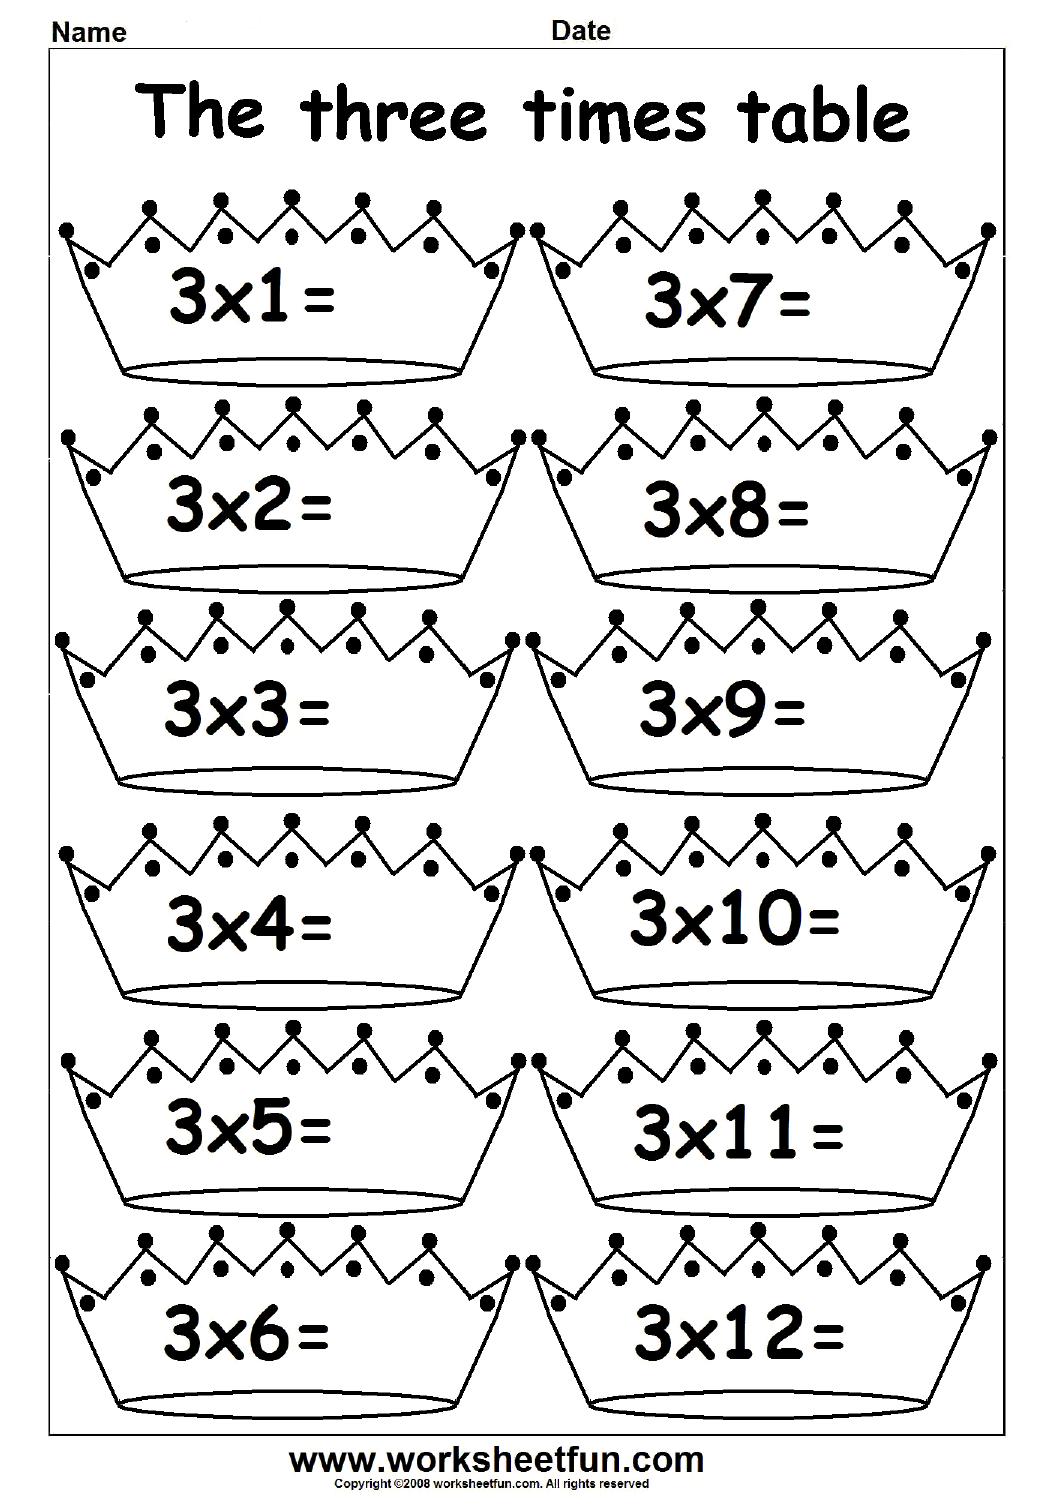 2 3 4 5 6 7 8 9 10 11 and 12 times table fun times 11 and 12 times table fun times table worksheets gamestrikefo Images